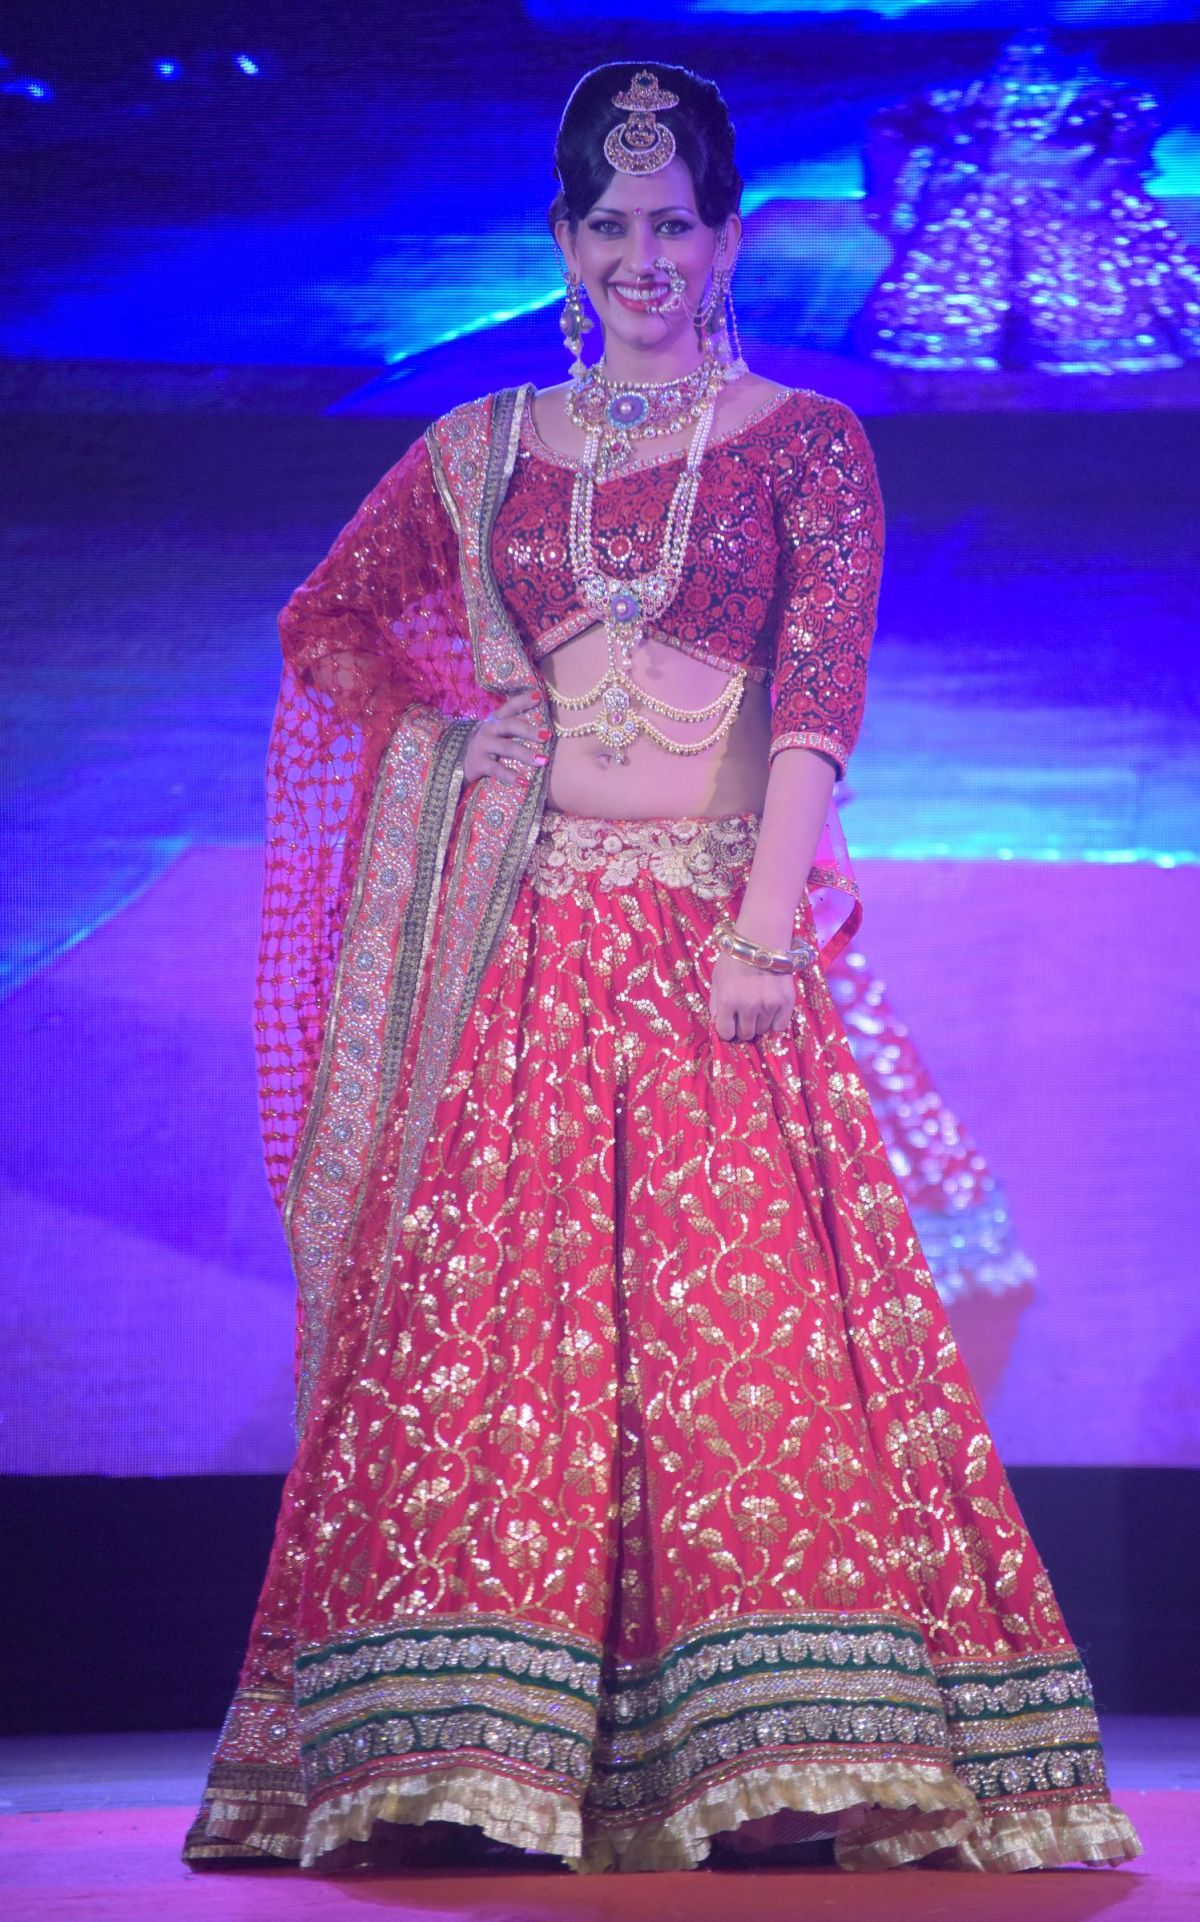 13. Sanjana Singh on the Ramp DSC_5262